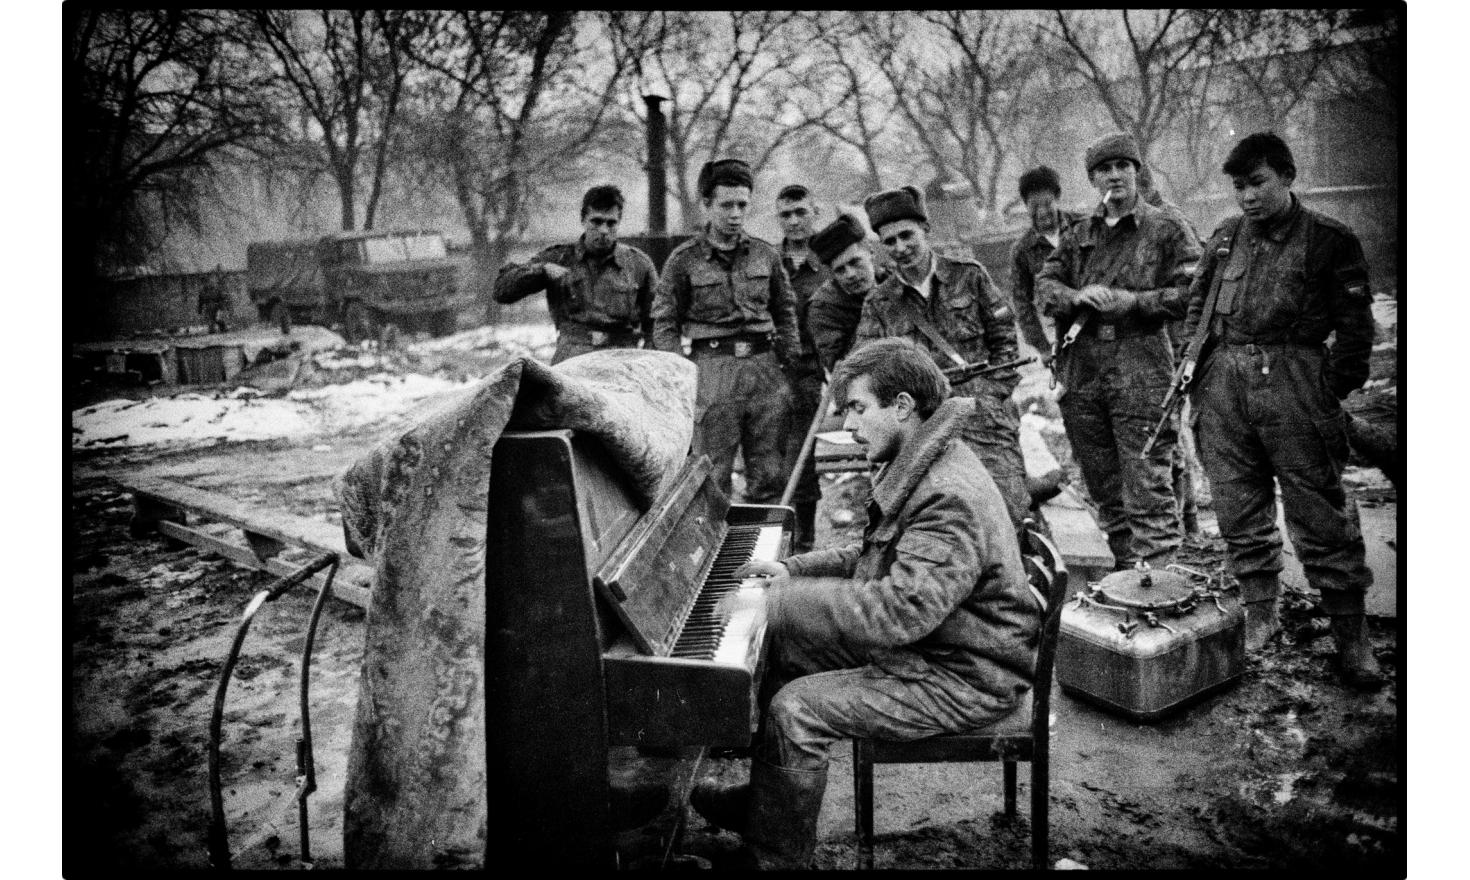 The pianist. Headquarters of the Russian army. Grozny, Chechnya. 01-1995